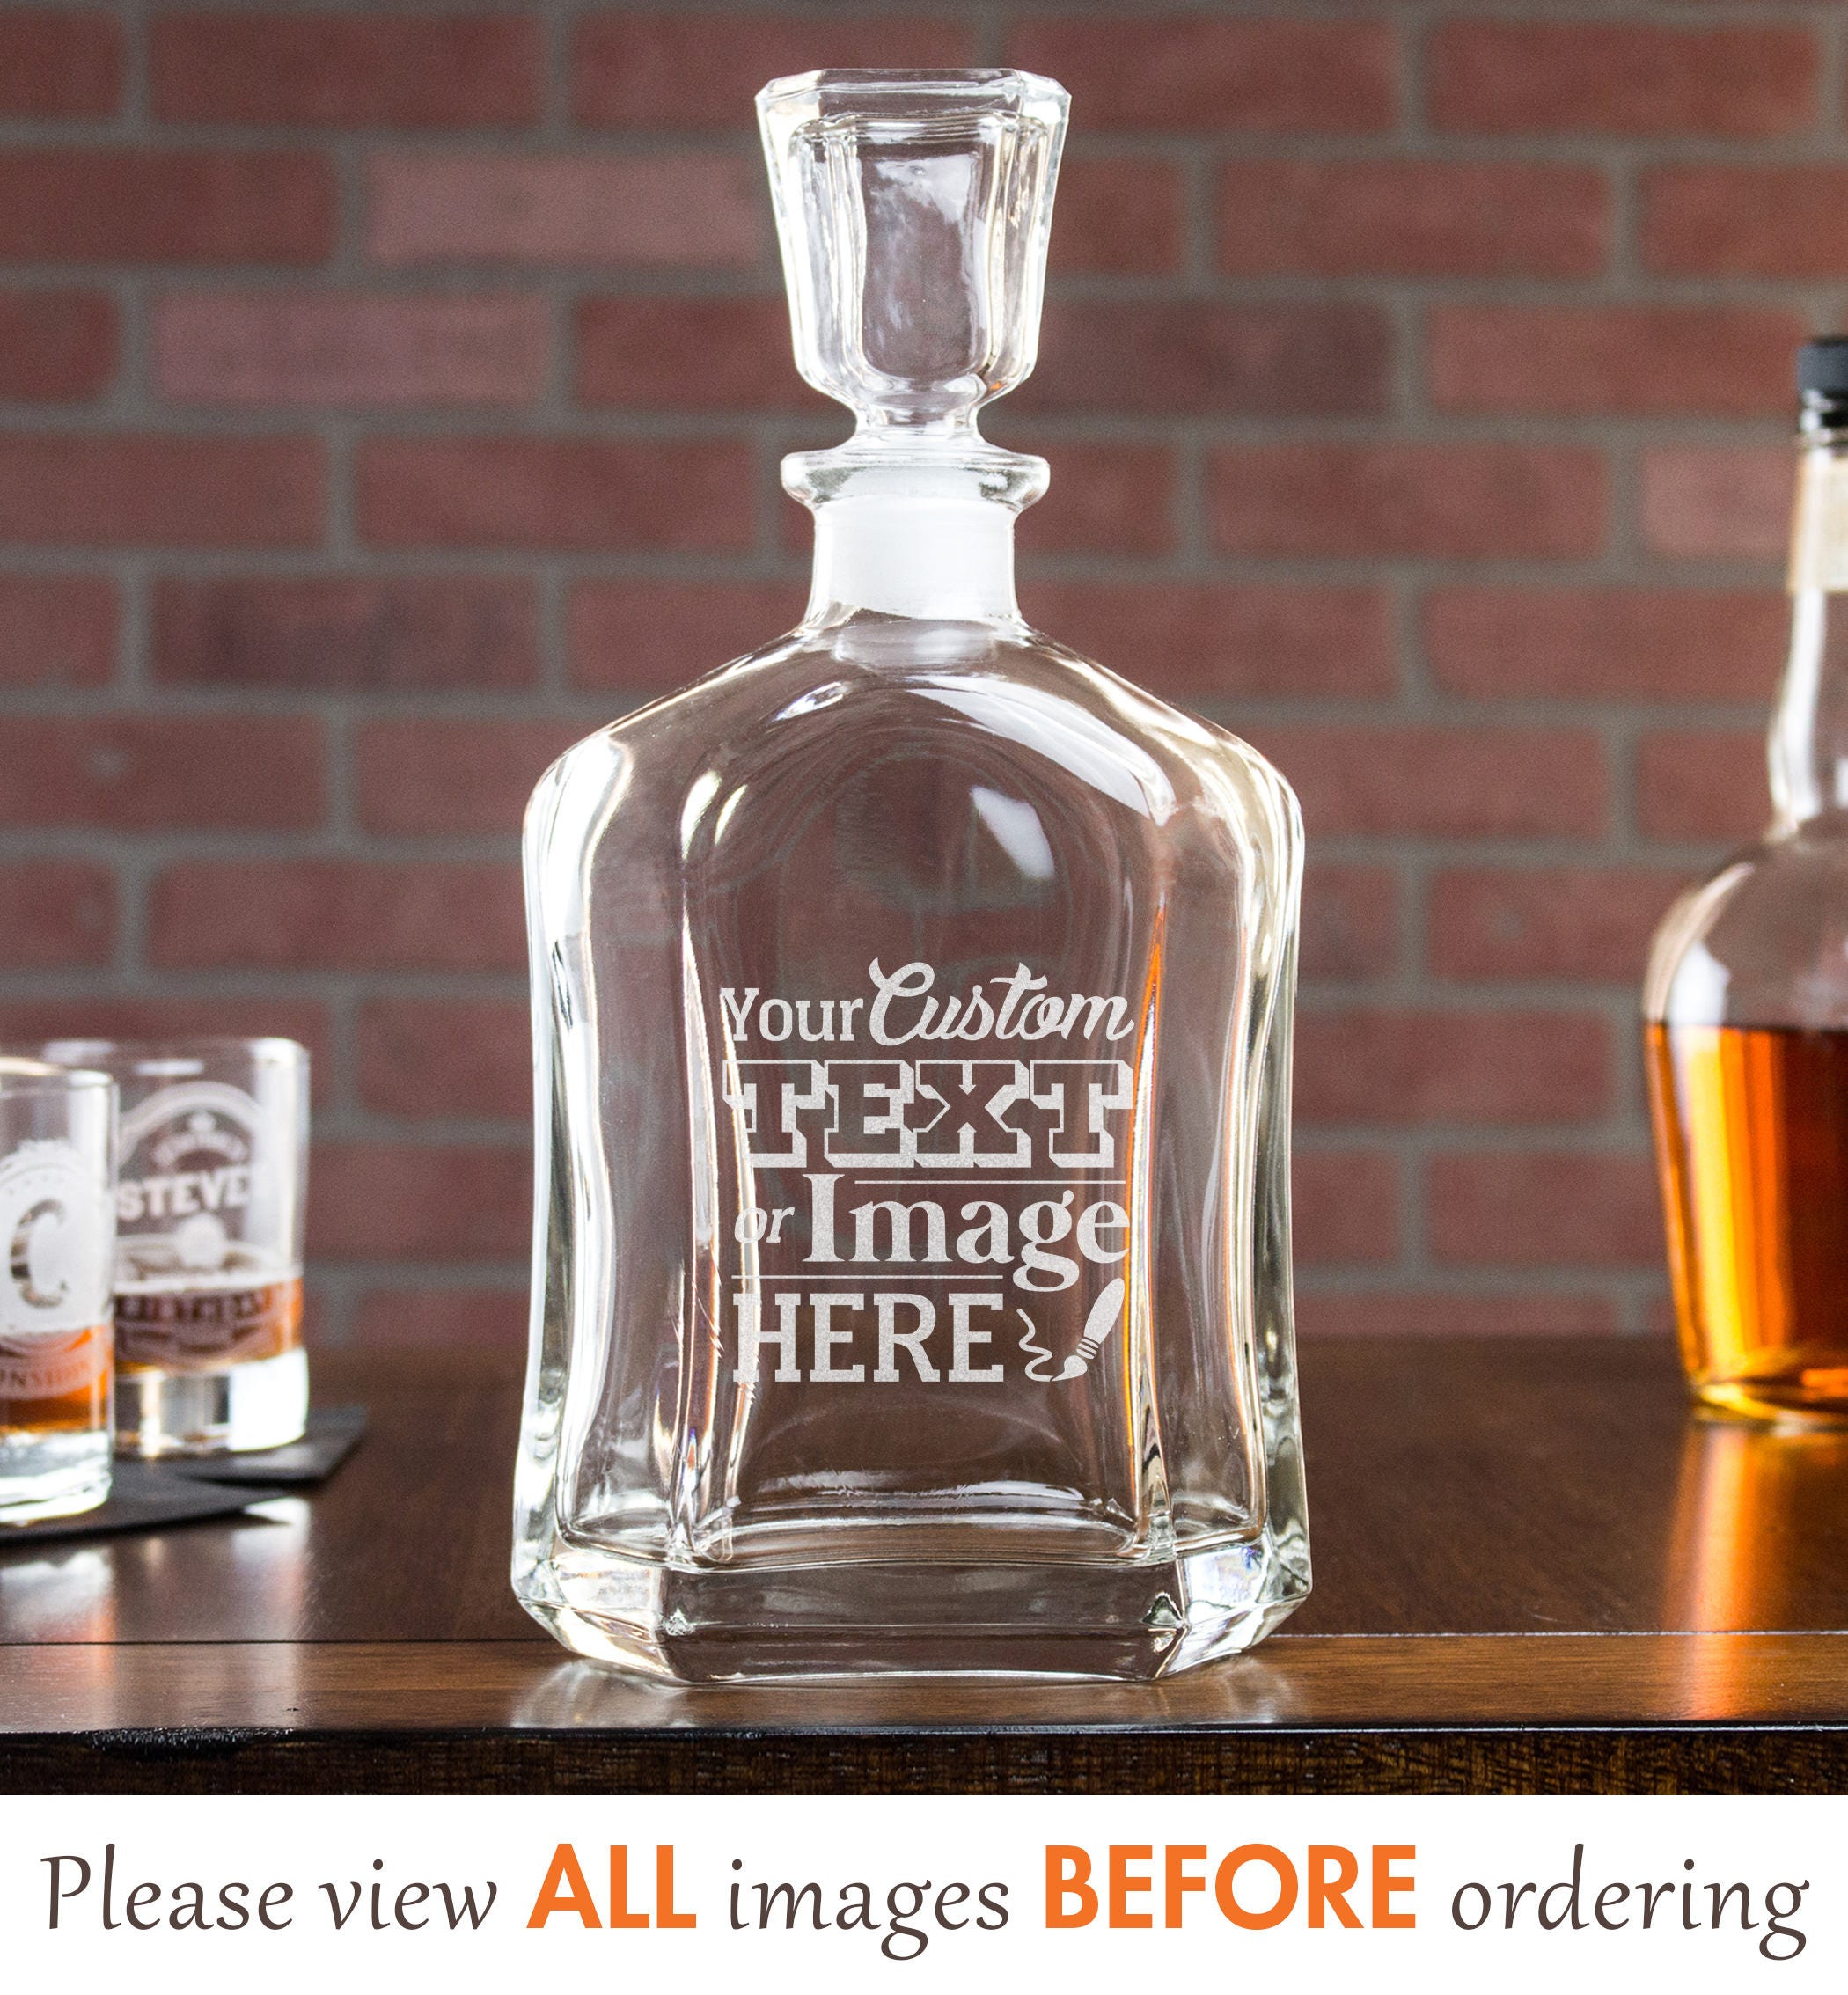 489d90332bc4 Whiskey Decanter, Custom Whiskey Decanter, Boss Gift, Personalized Whiskey  Decanter, Liquor Decanter, Retirement Gifts, Gift for Dad